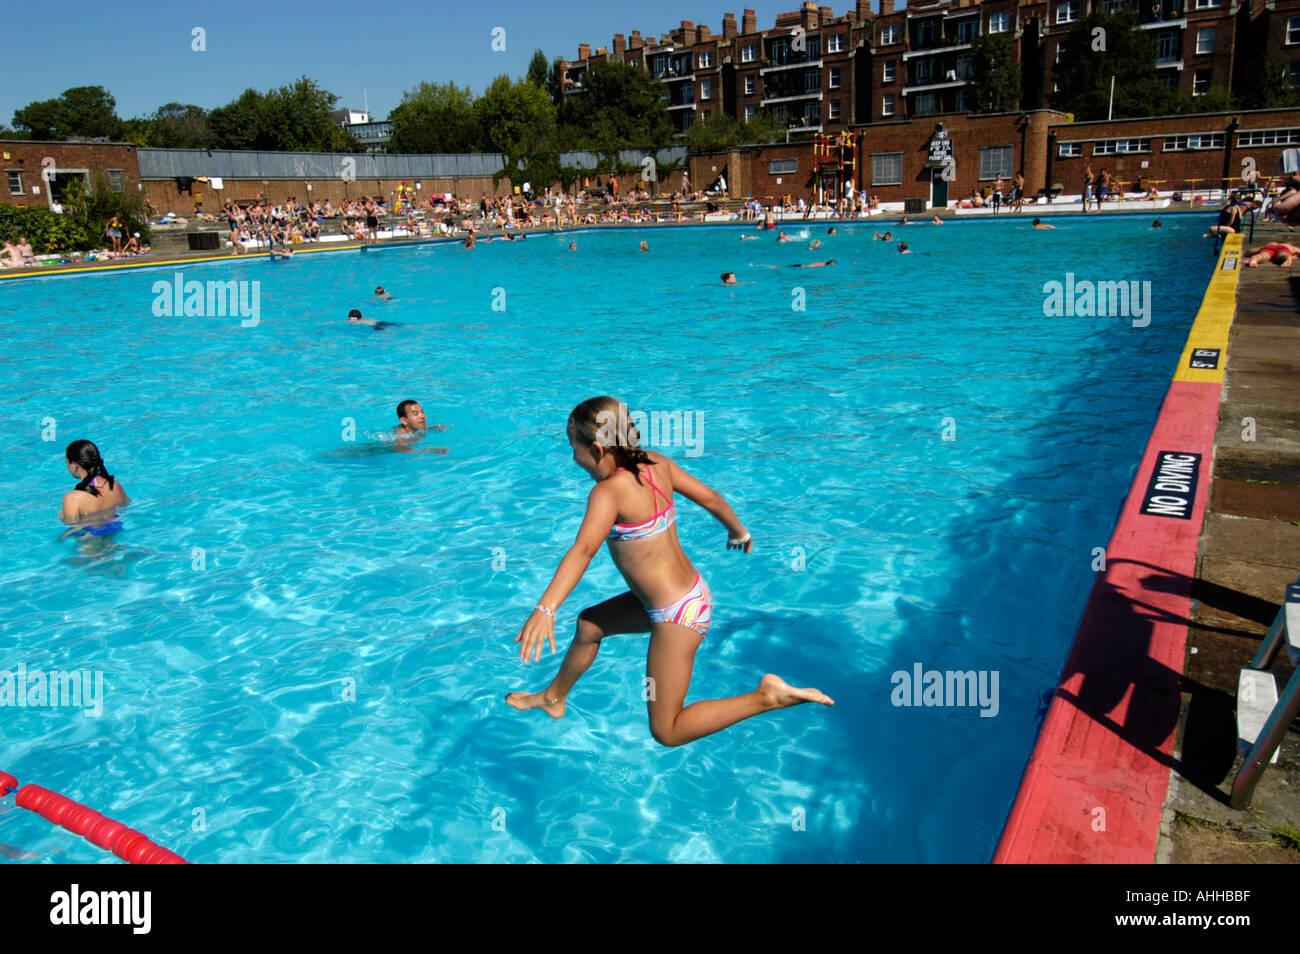 Young Girl Jumping Into The Water At The Lido Outdoor